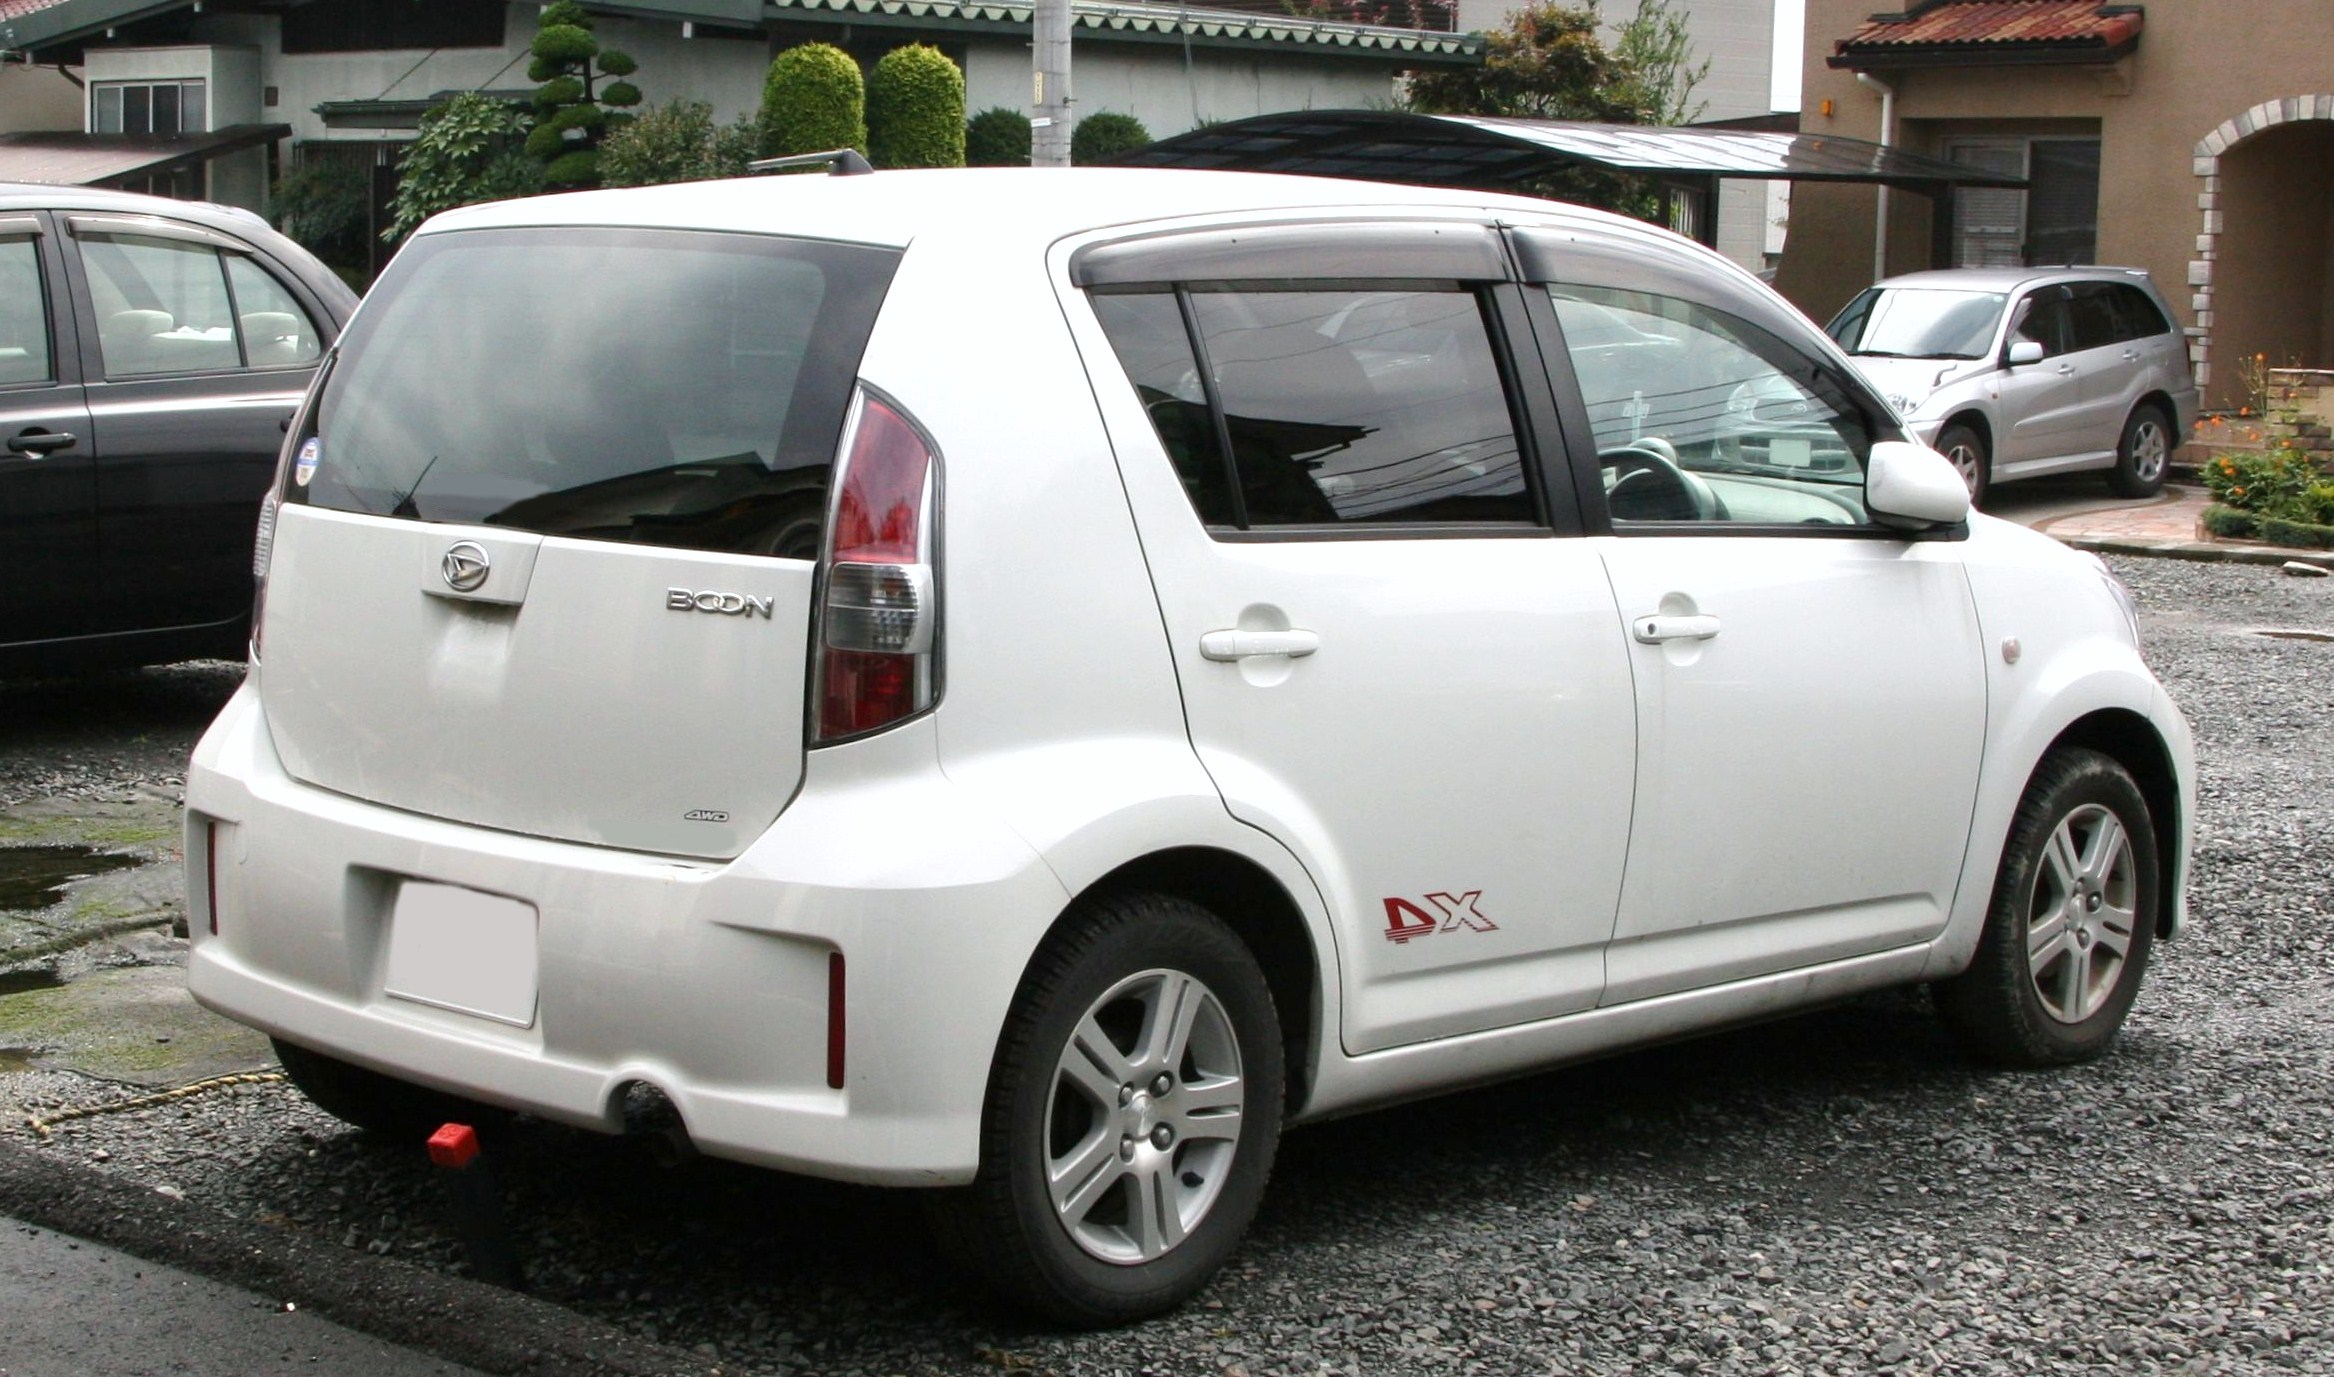 File:Daihatsu Boon X4 rear.jpg  Wikimedia Commons